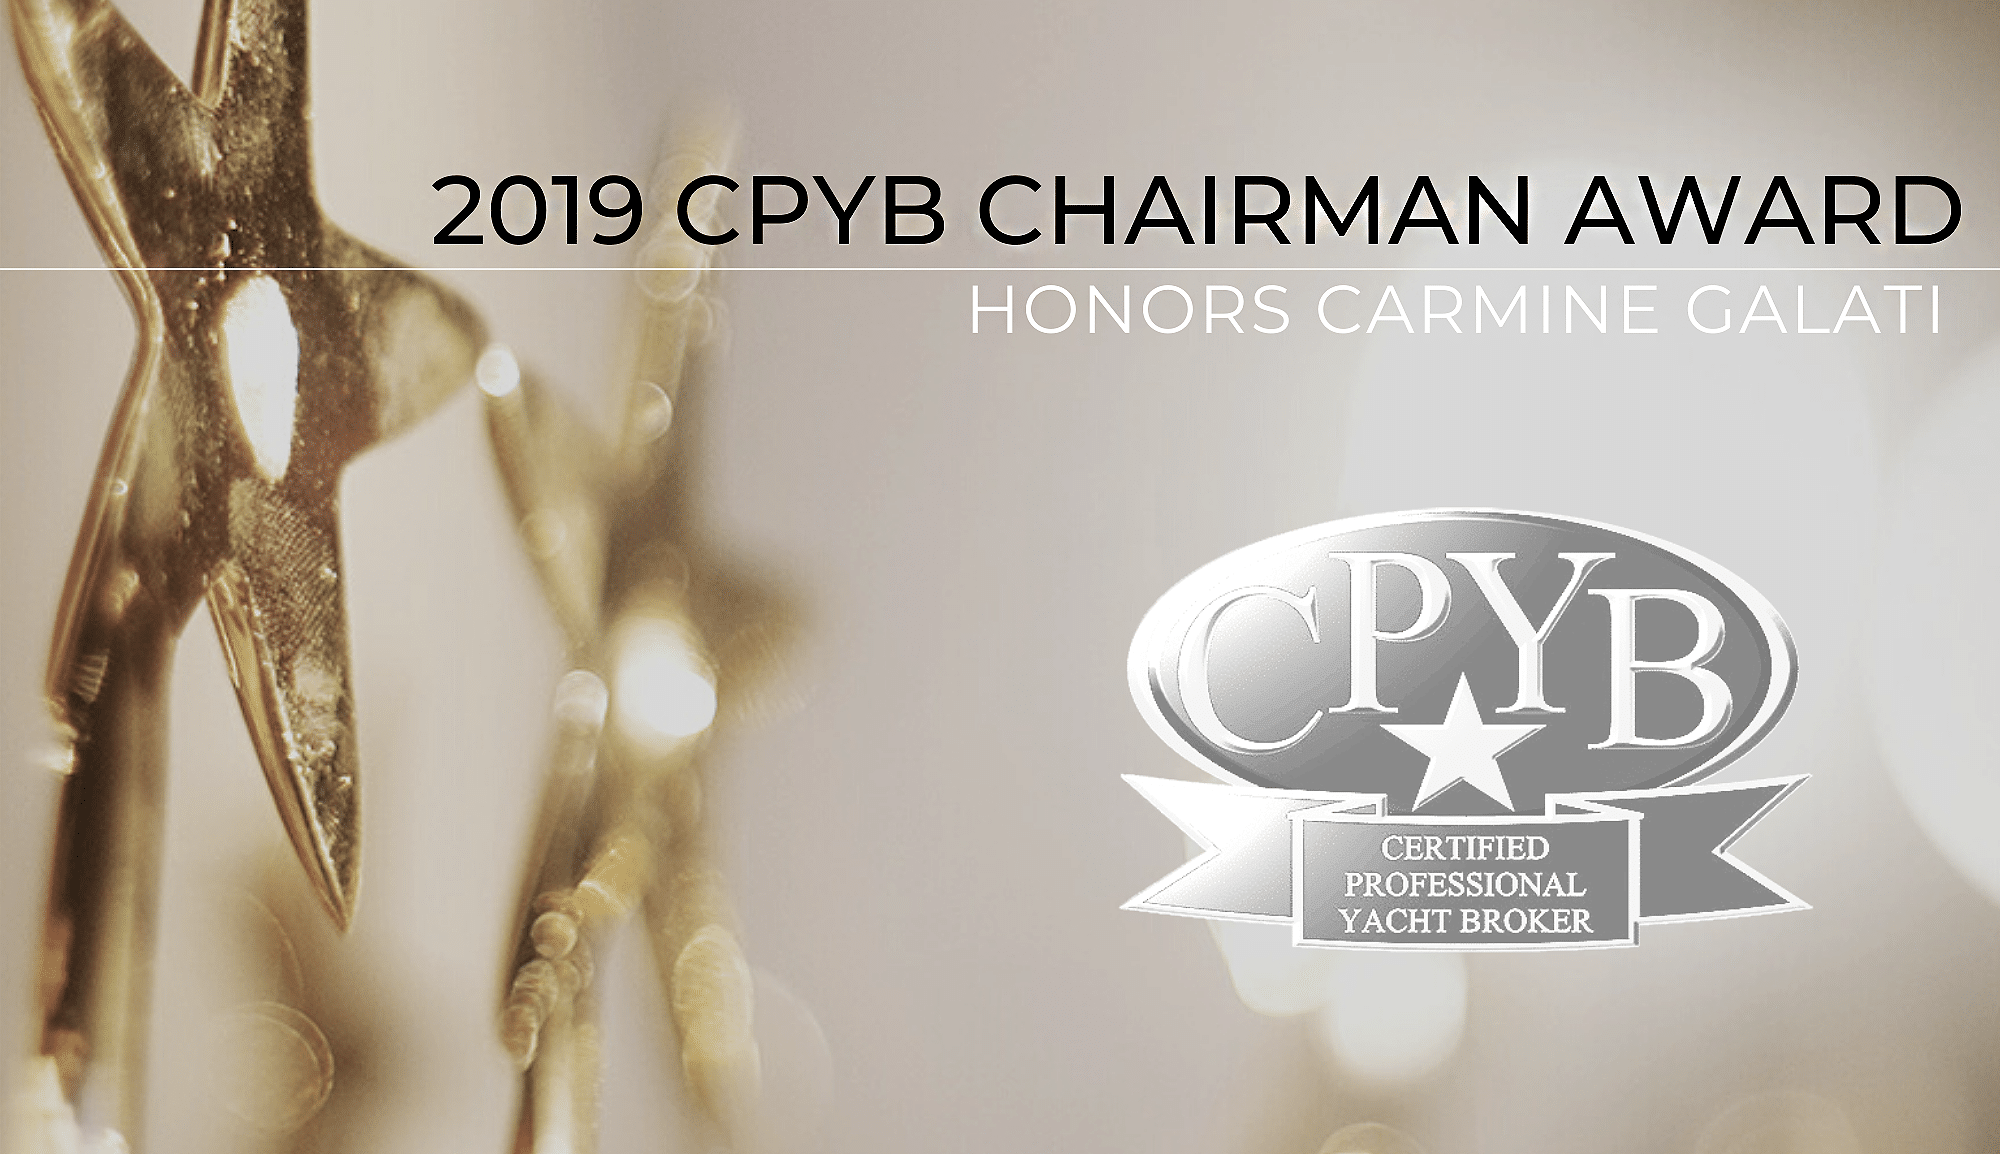 CPYB Chairman's Award Honors Carmine Galati For 2019